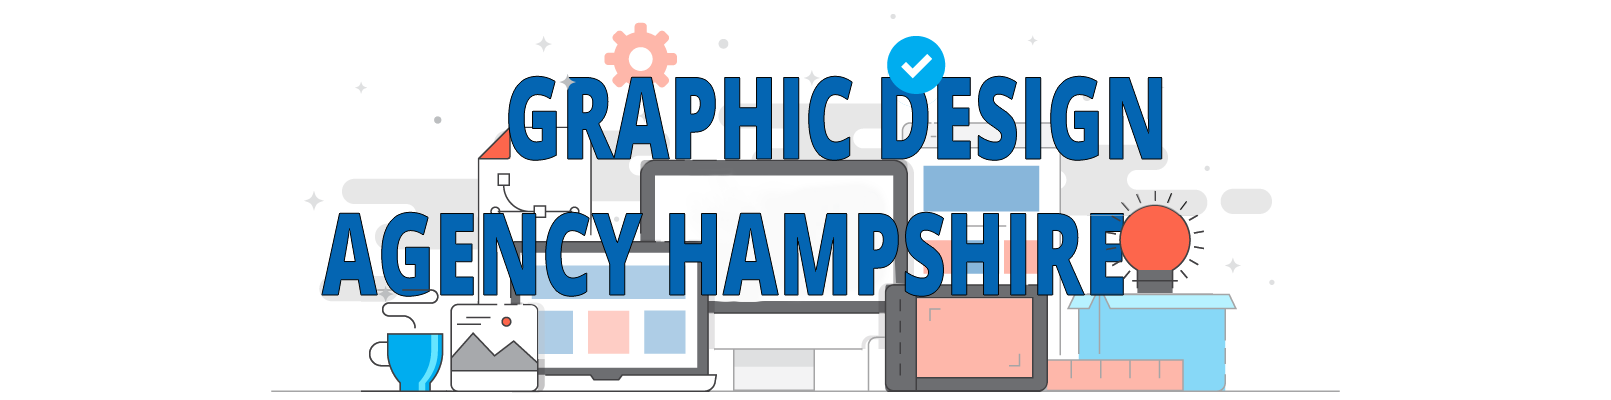 seek social graphic design agency hampshire header with transparent background